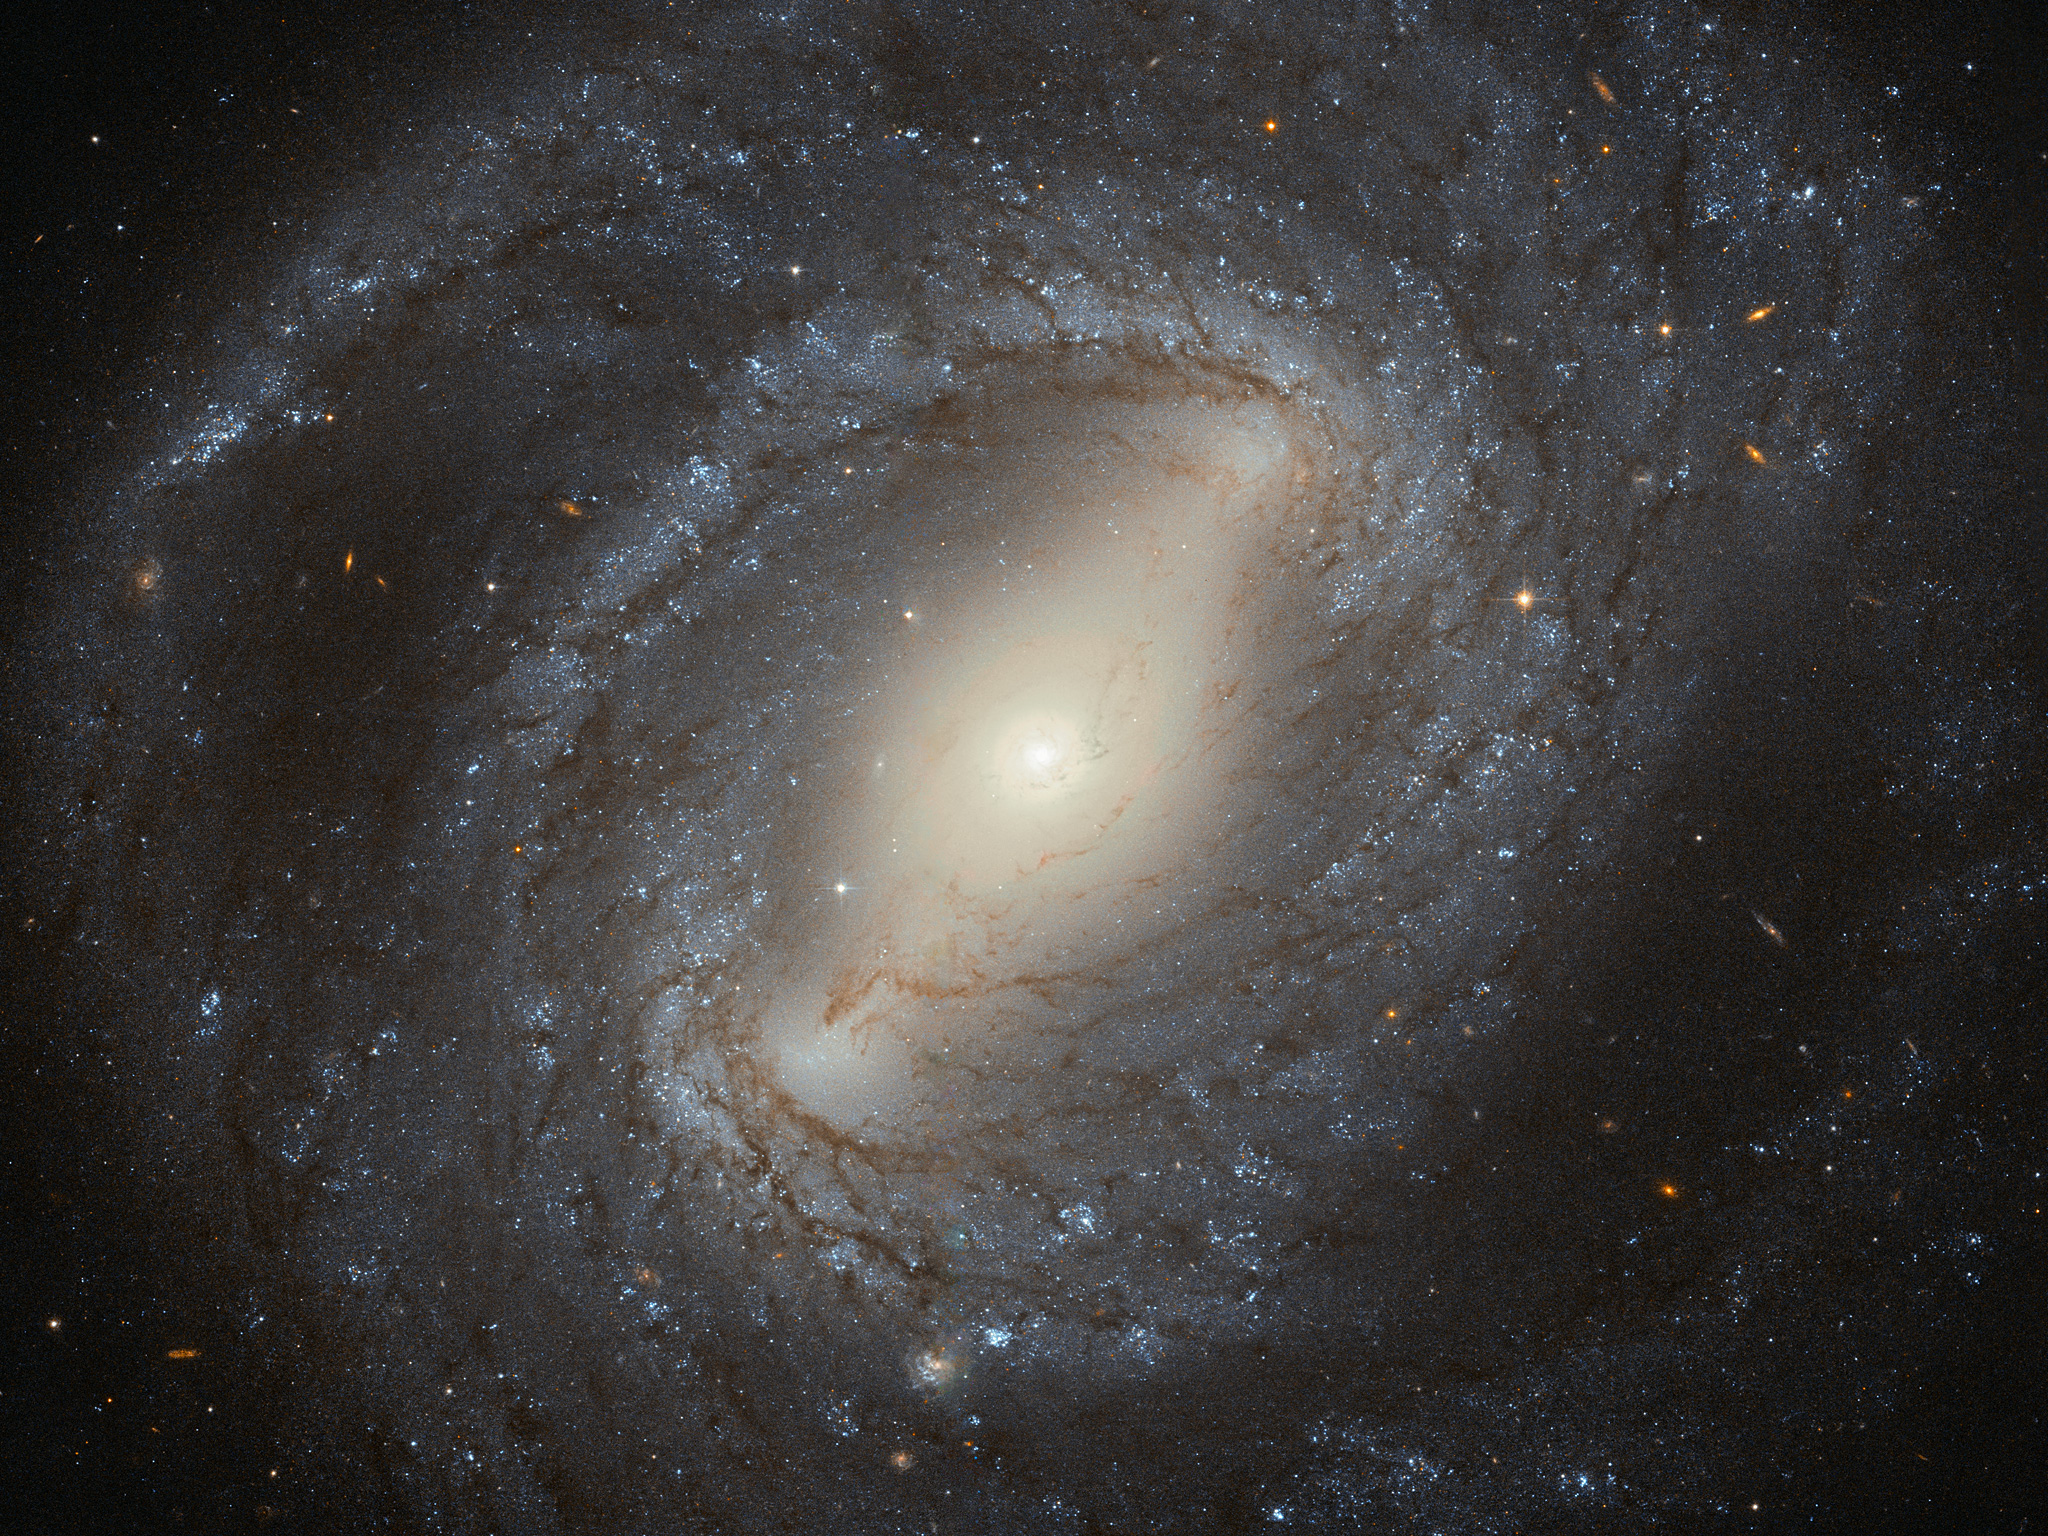 The barred spiral galaxy NGC 4394 sparkles in this stunning view from the Hubble Space Telescope released on May 2, 2016.